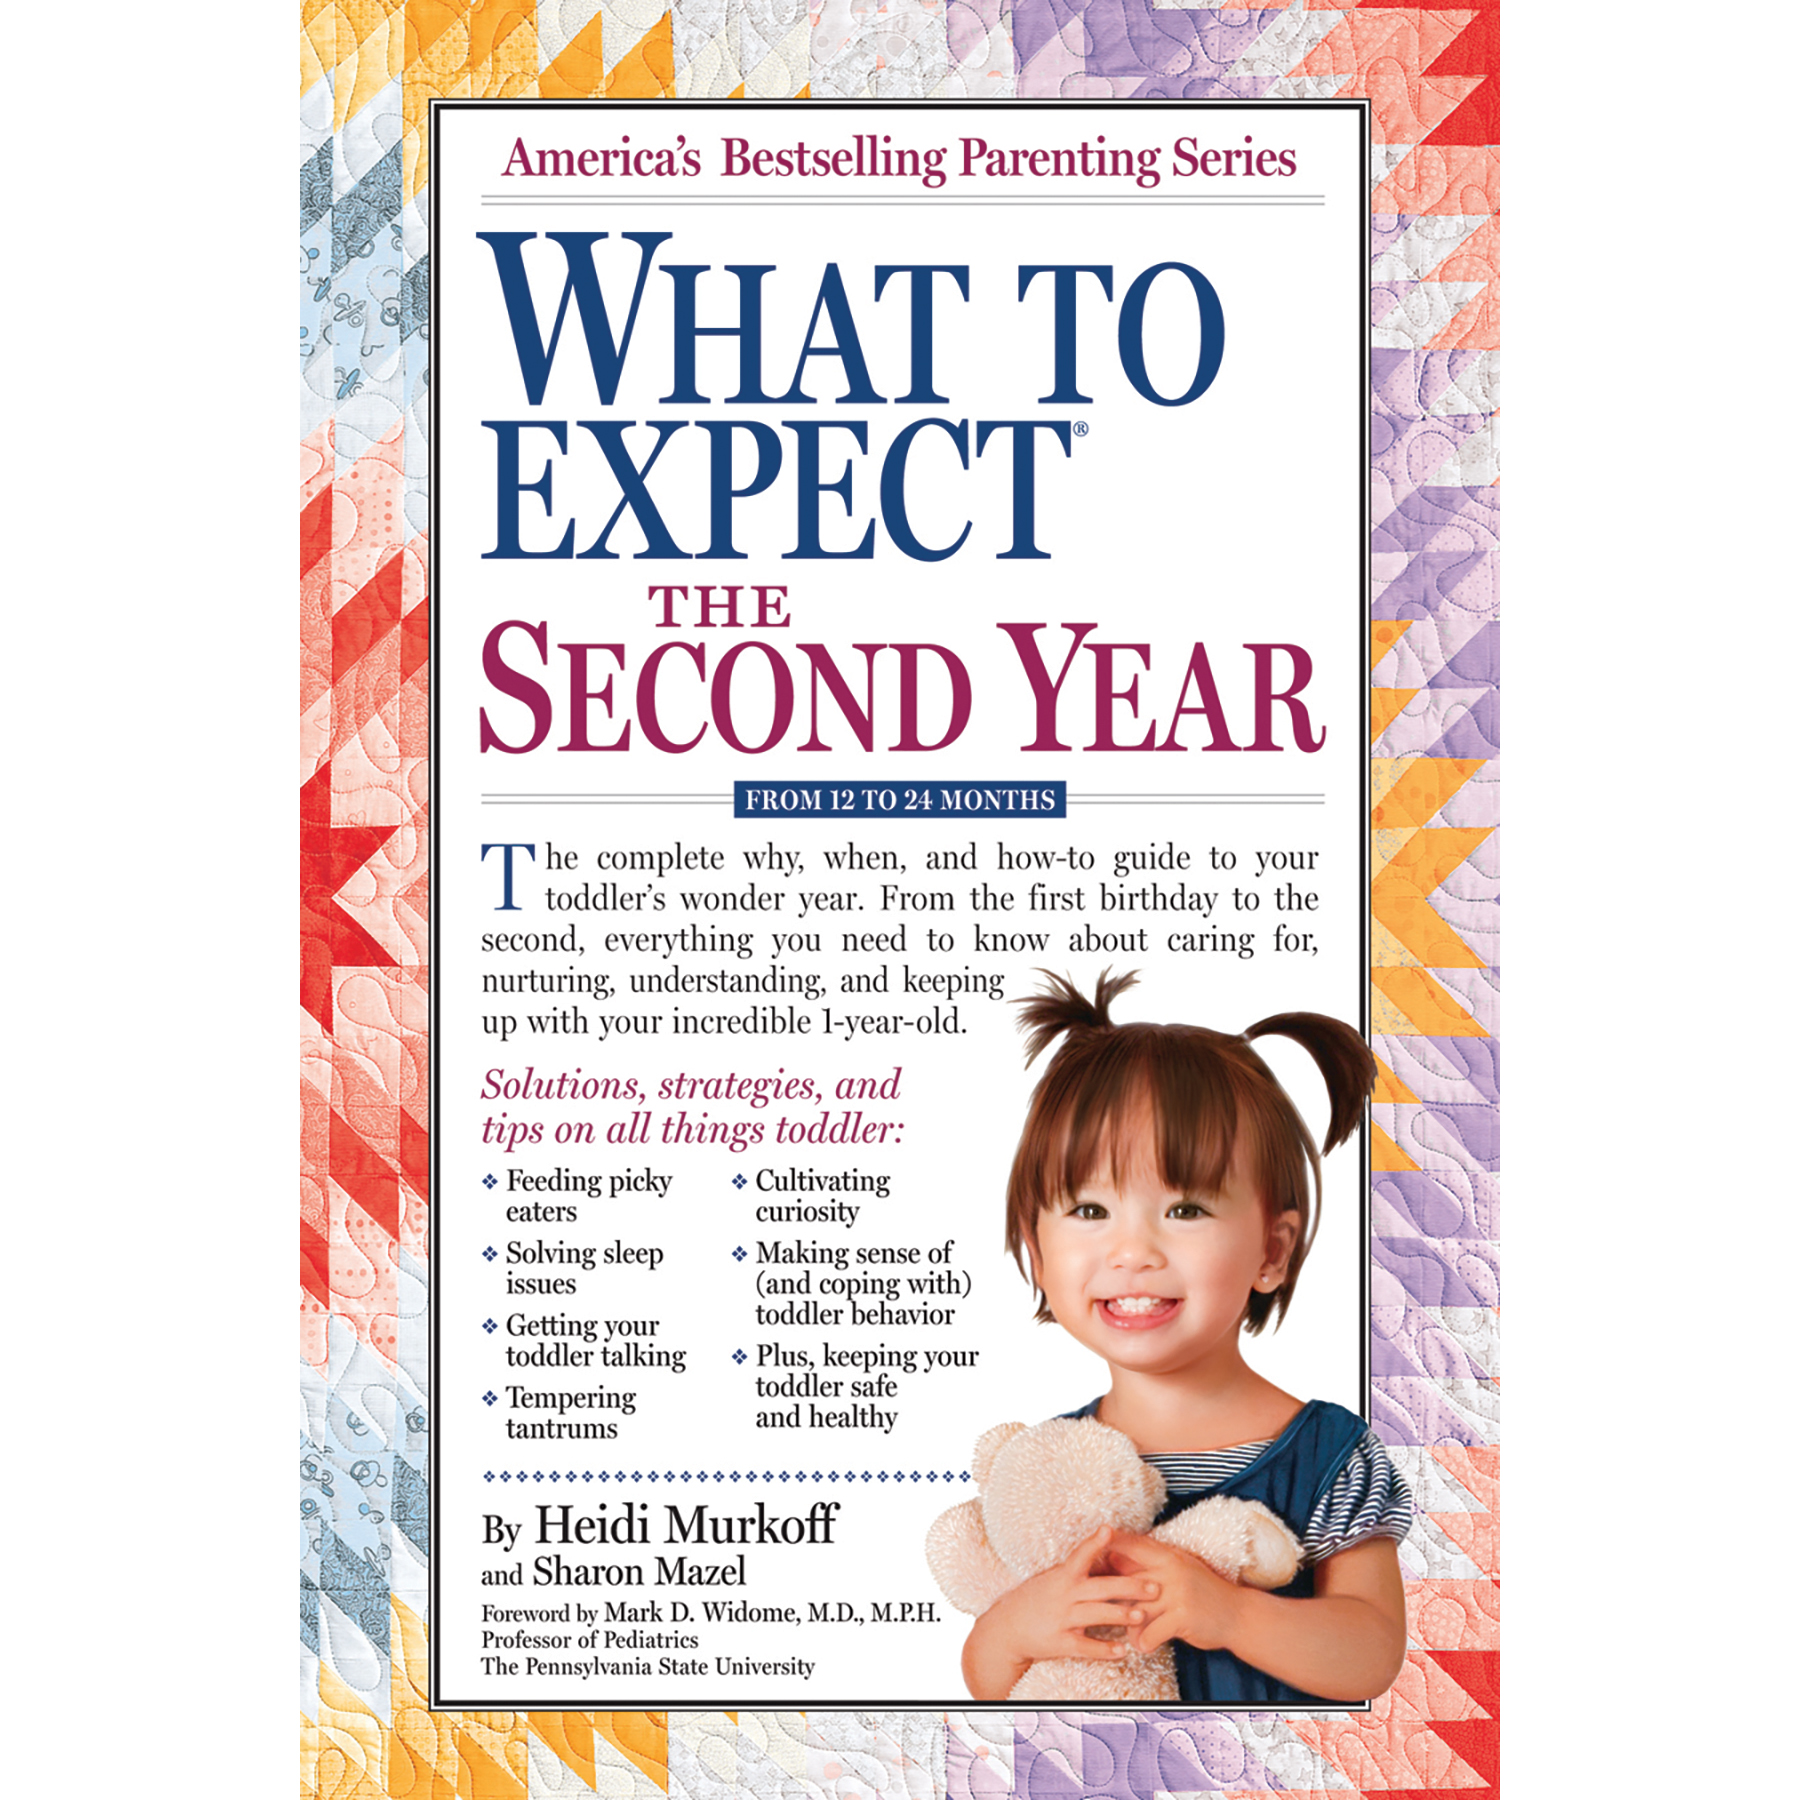 What to Expect the Second Year 12-24 months book cover, quilt background with toddler, Childbirth Graphics, 50928